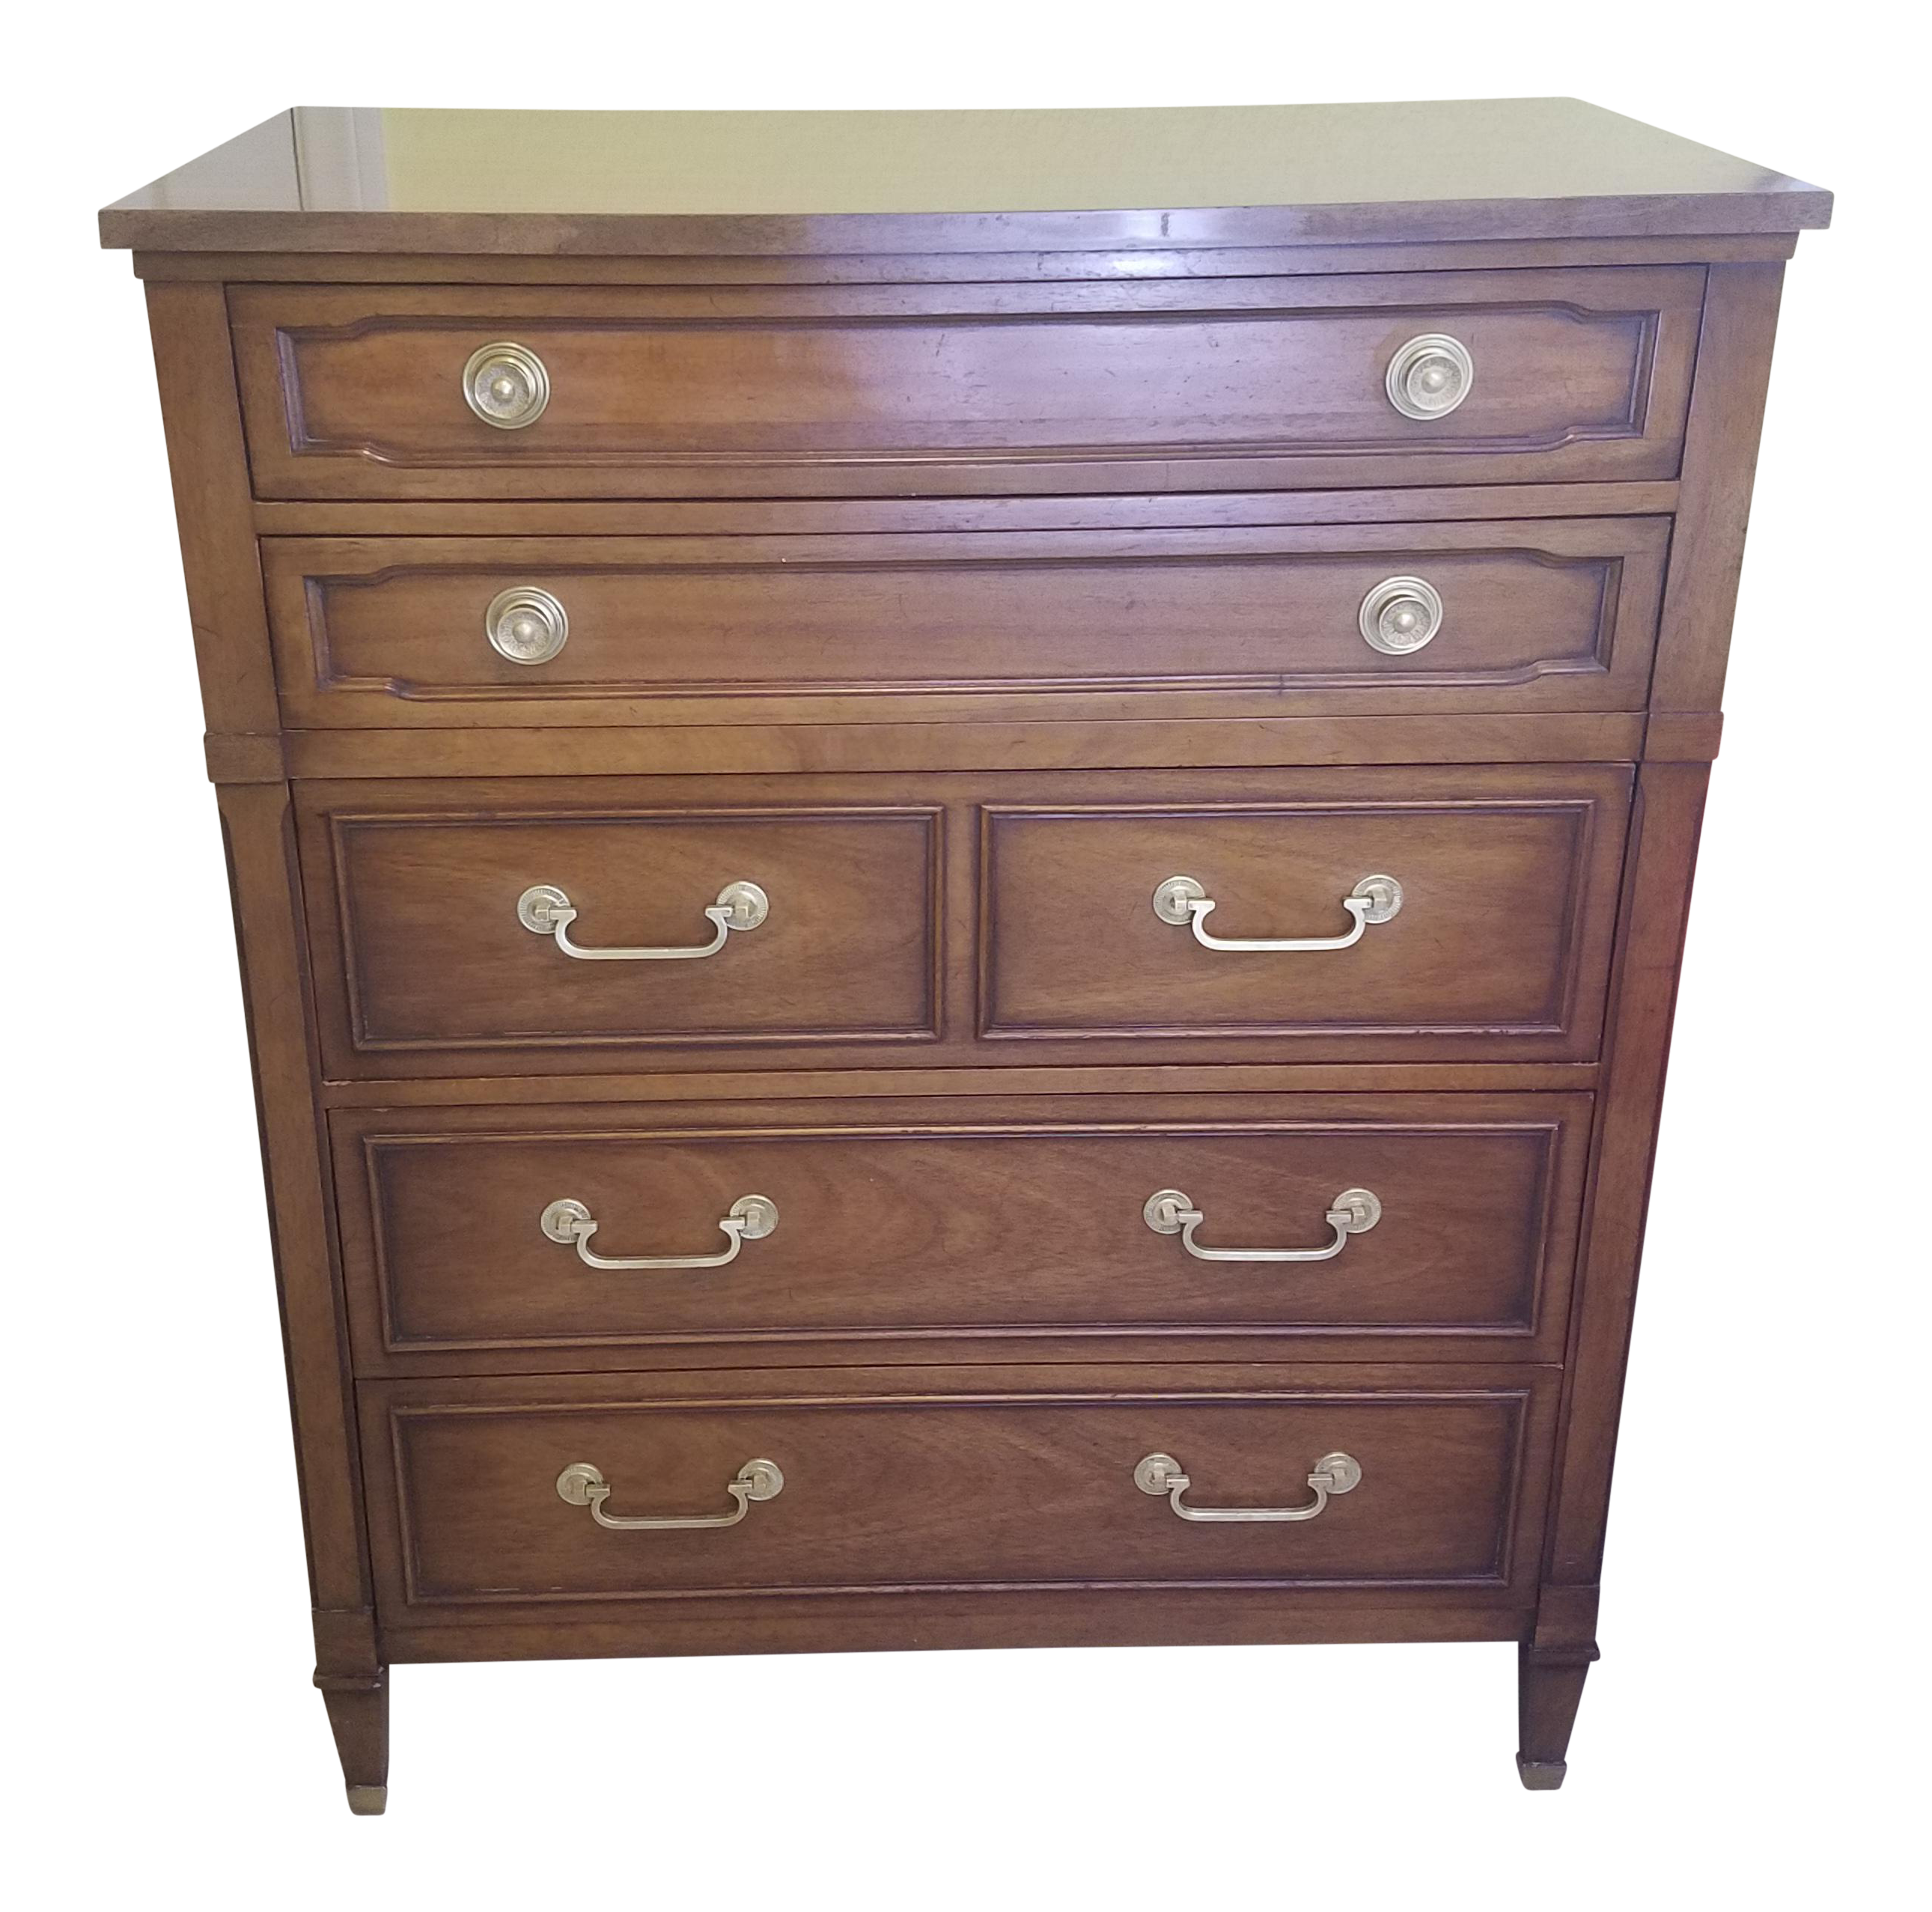 store tips biscayne locator bedroom set in top appraisal simple furniture excellent home stores p amazing cute design heritage antique hd on trend cool photos instappraisal under drexel company fresh